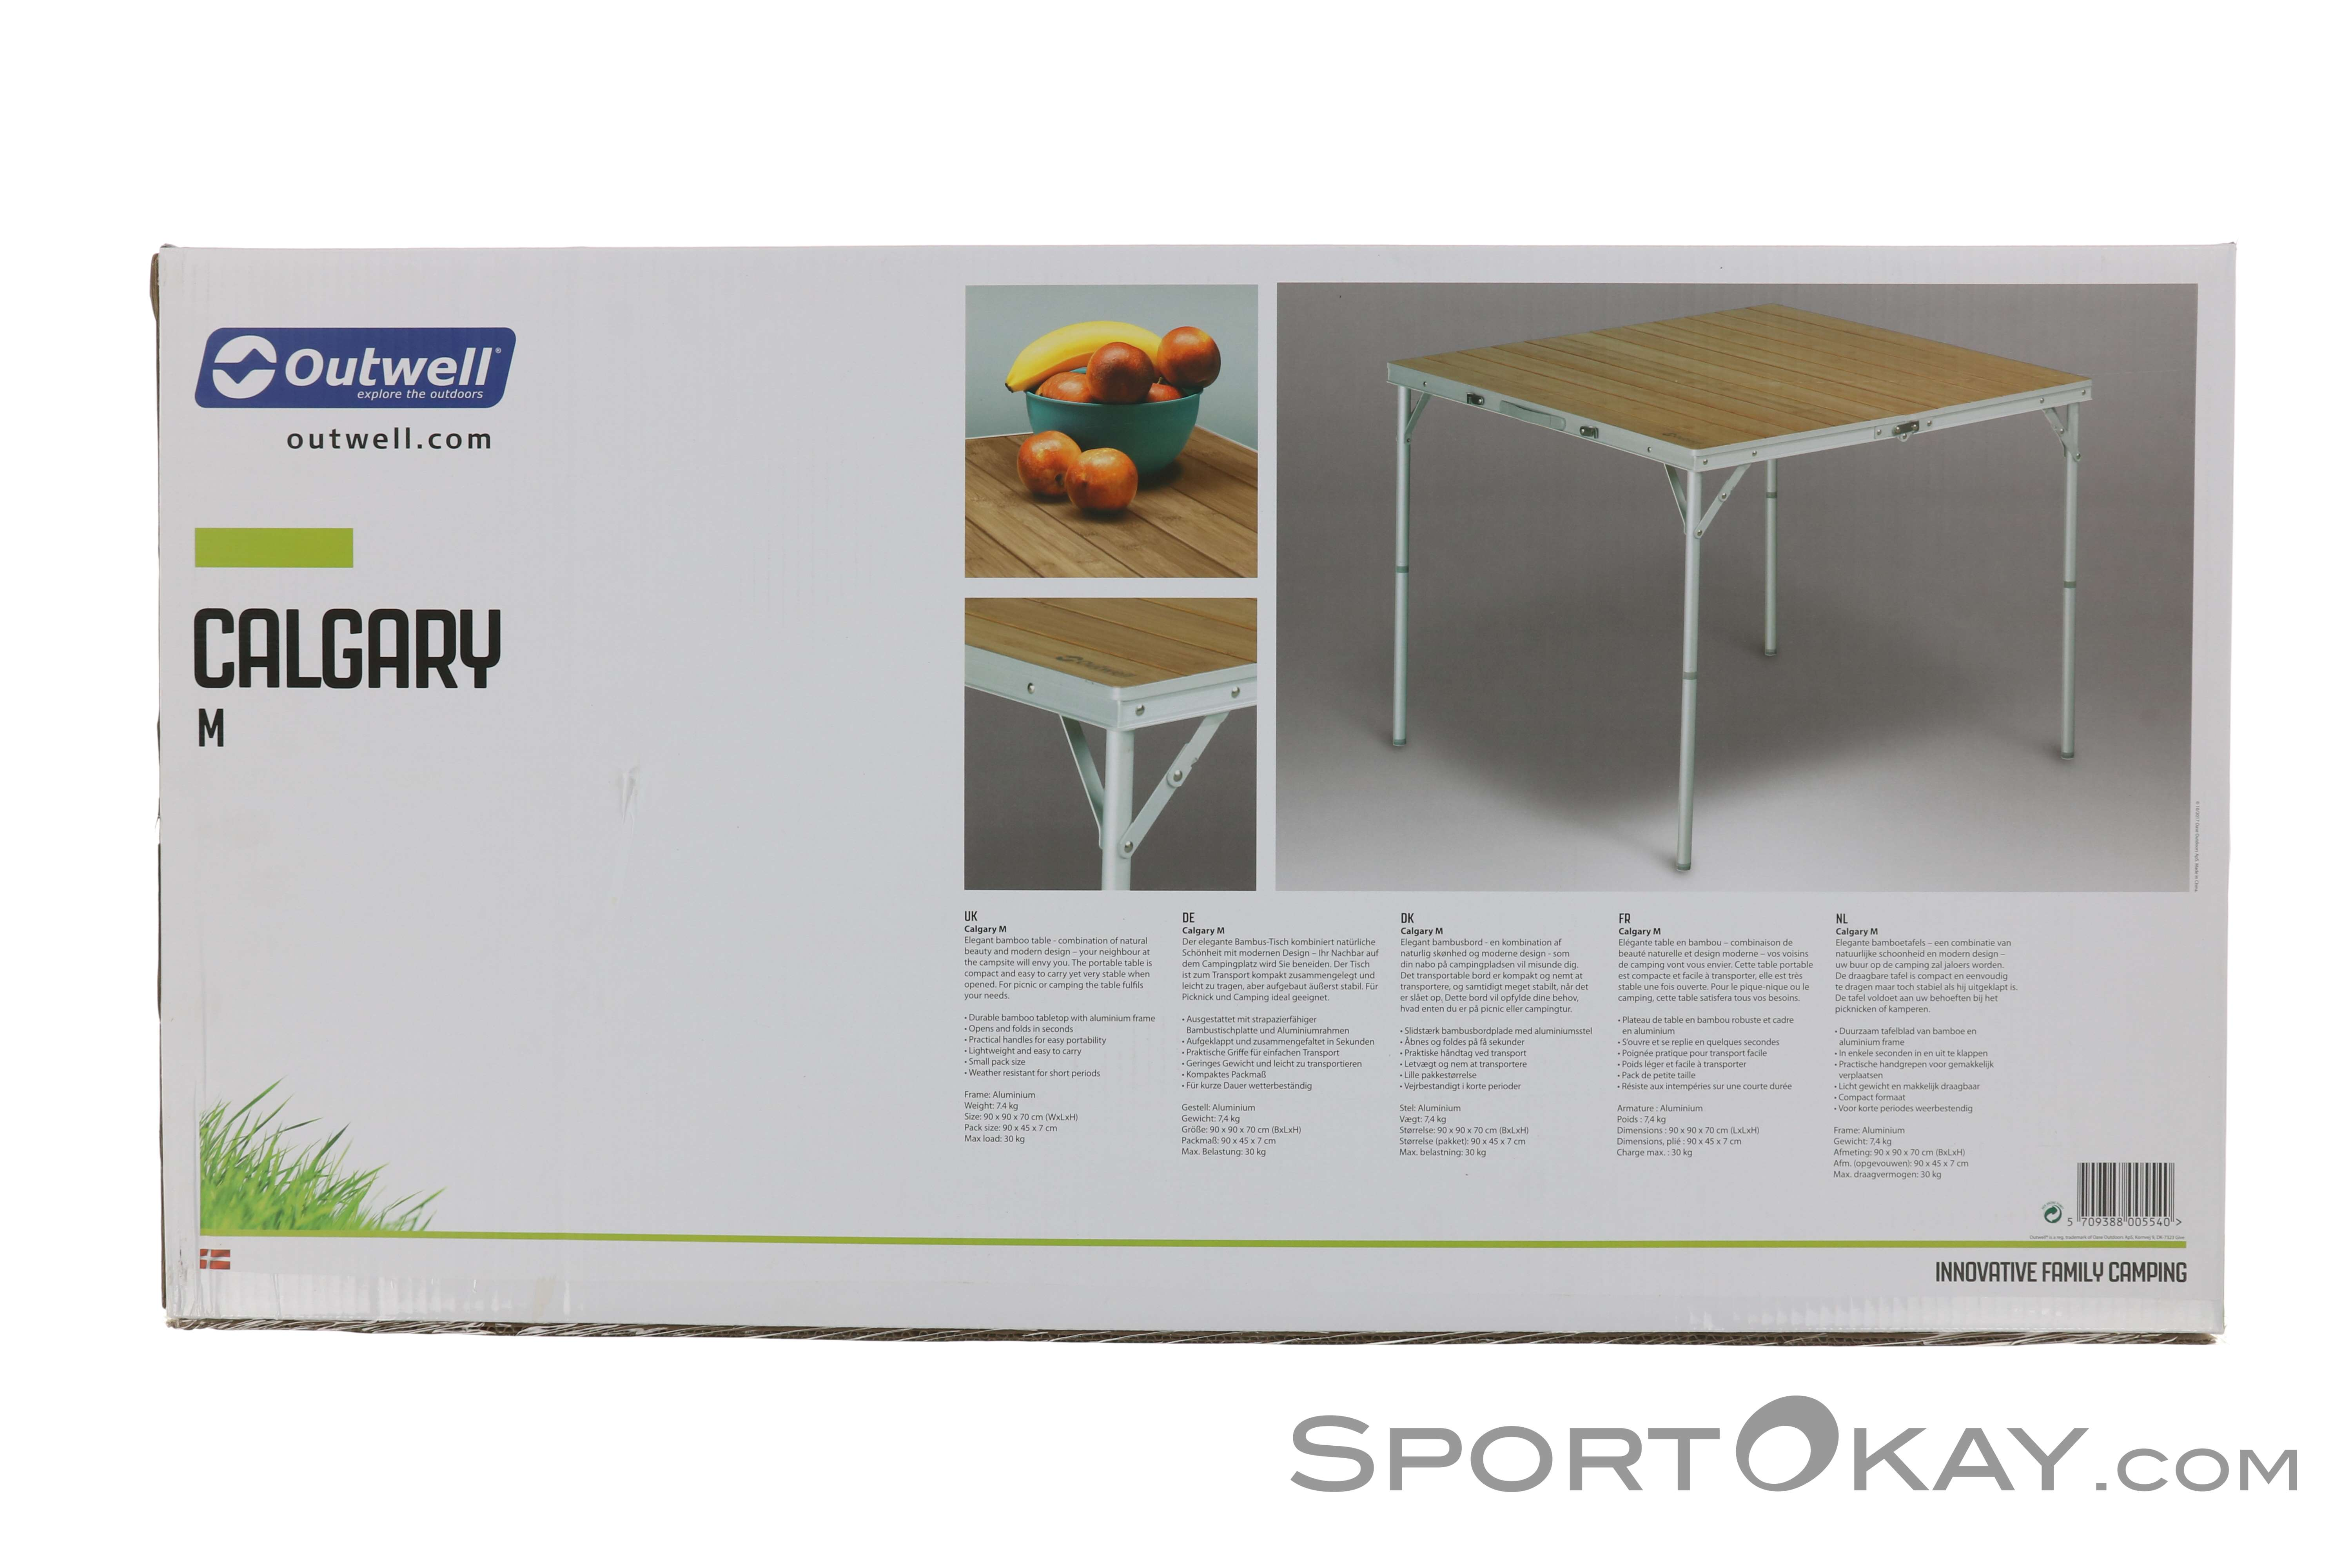 Outwell Camping Tafel.Outwell Outwell Calgary M Folding Table